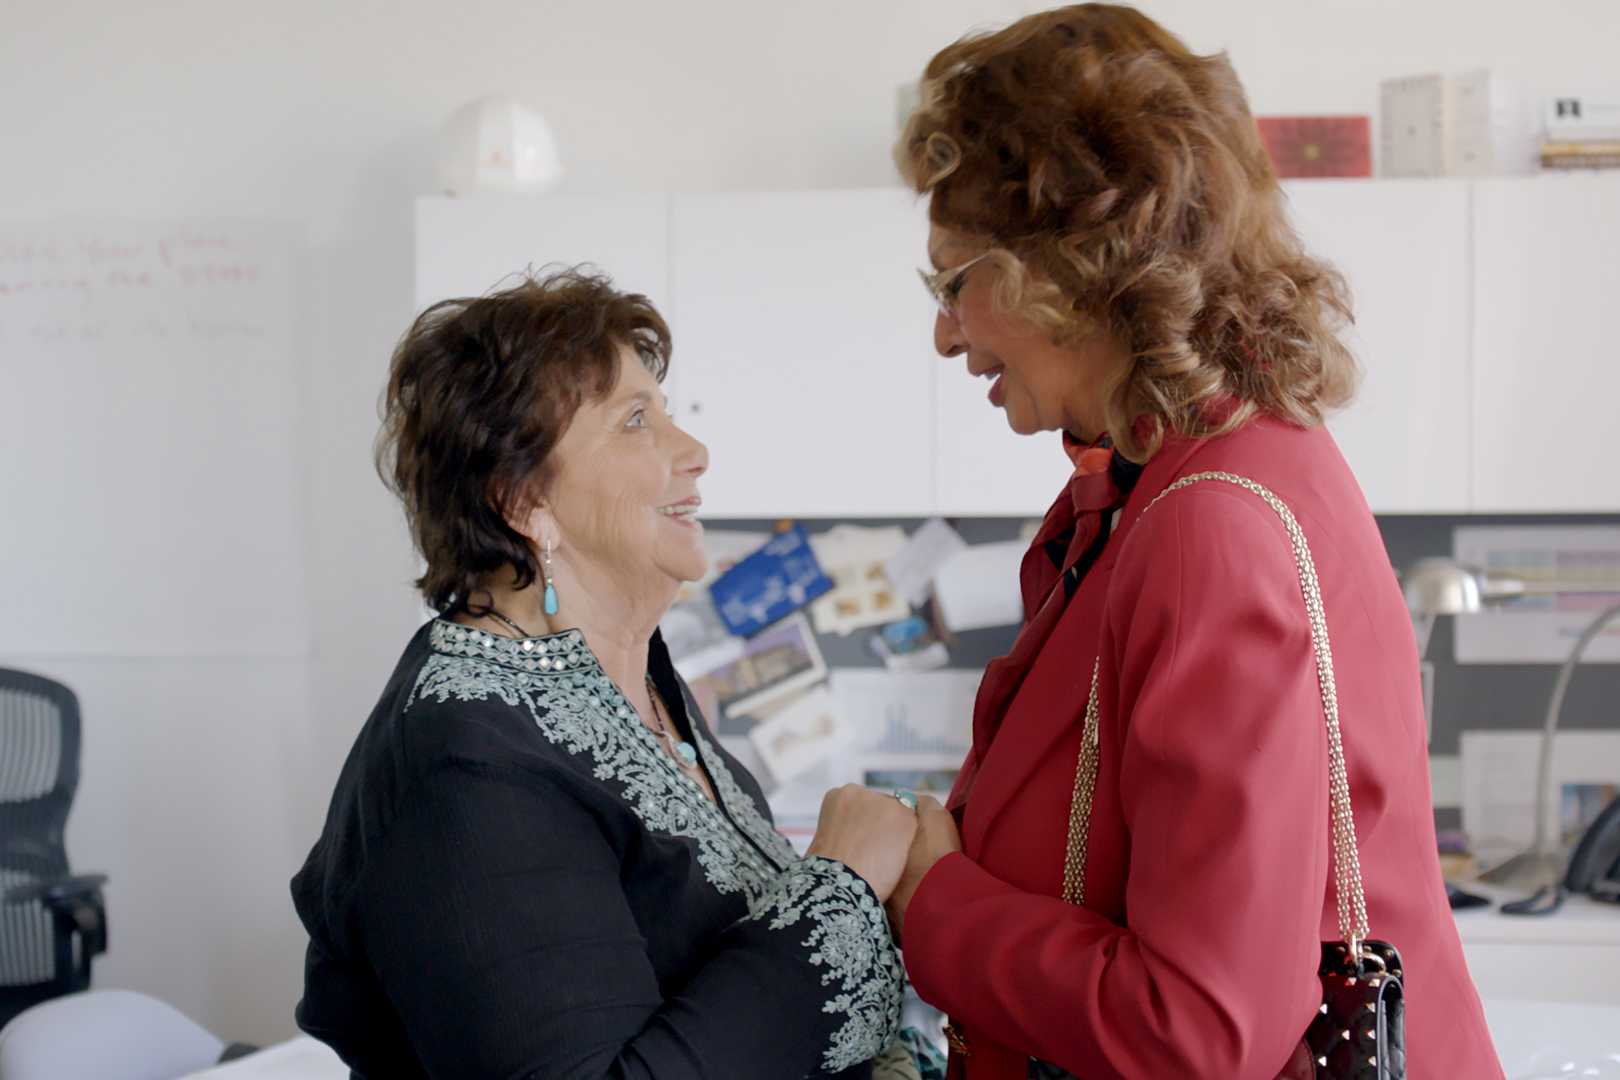 What Would Sophia Loren Do? review - a documentary proving you can find  strength from your idol